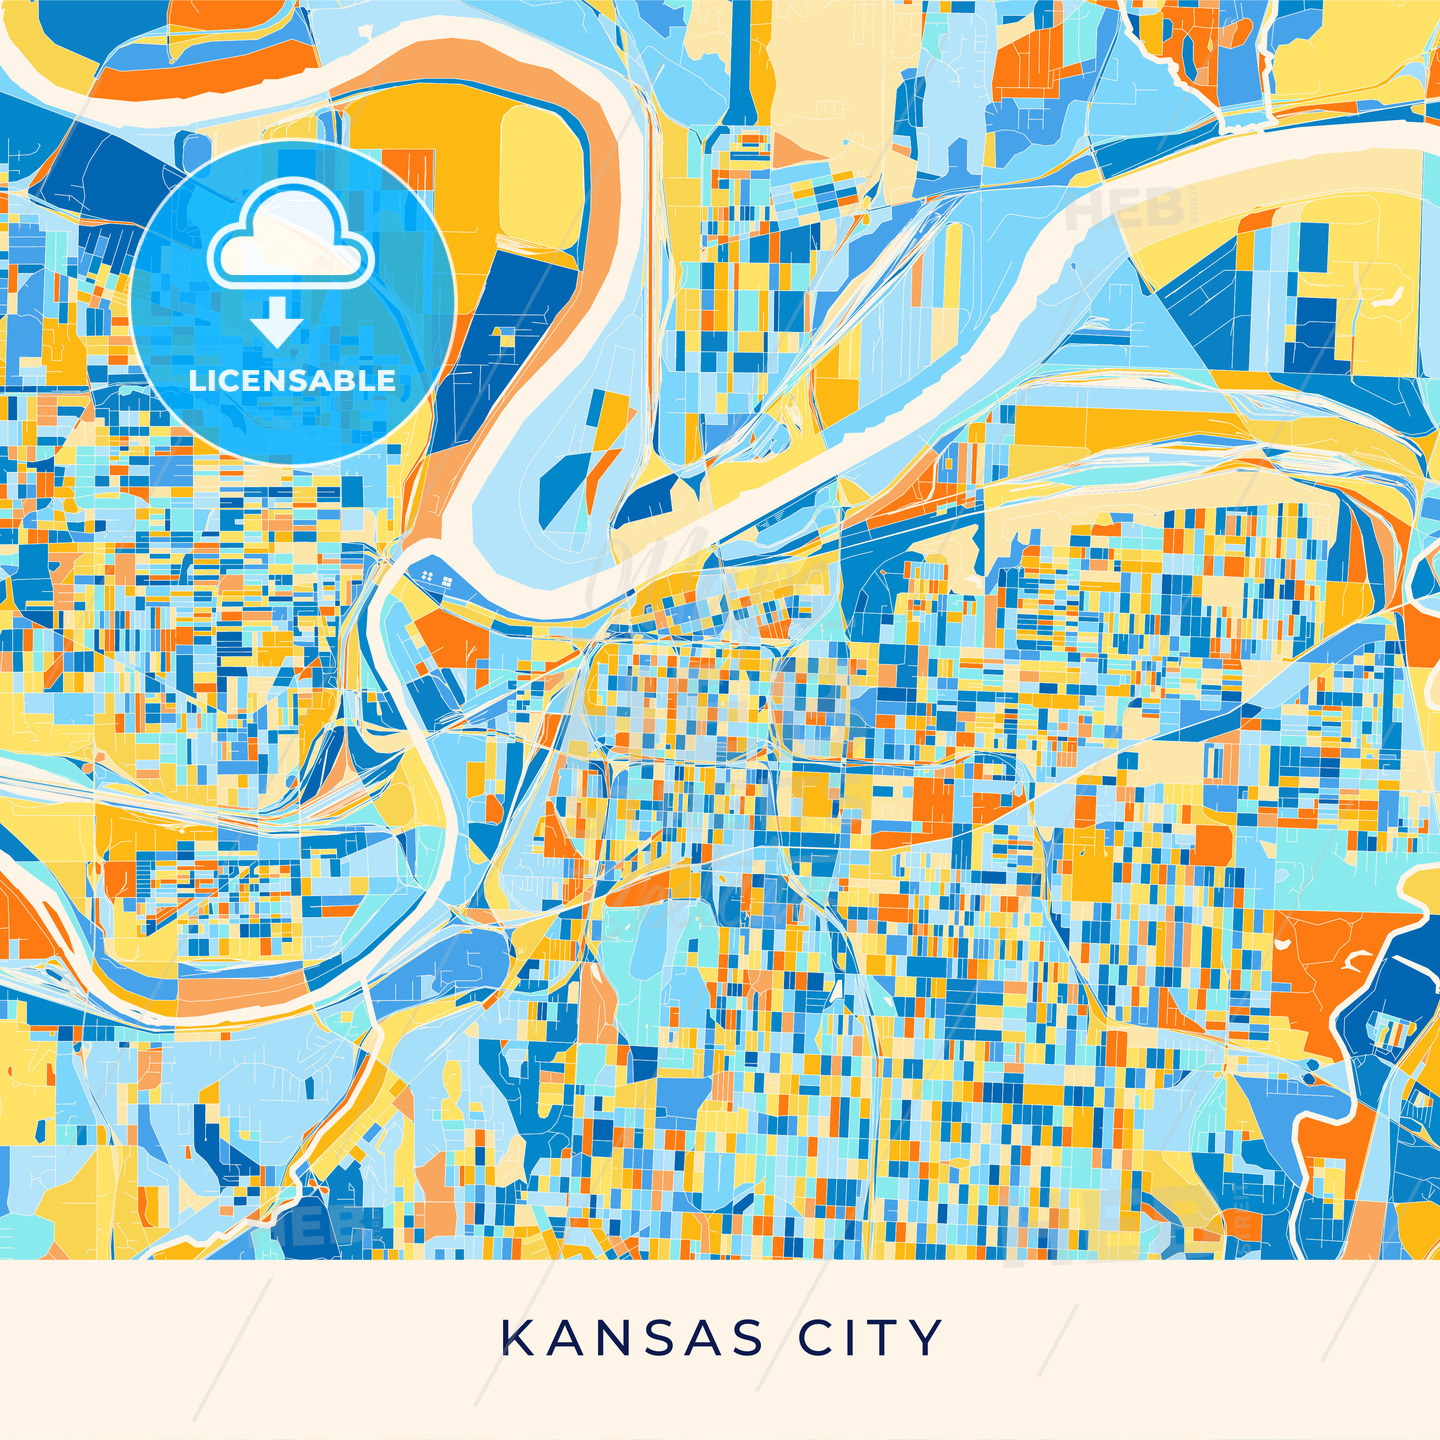 Kansas City colorful map poster template | HEBSTREITS Sketches